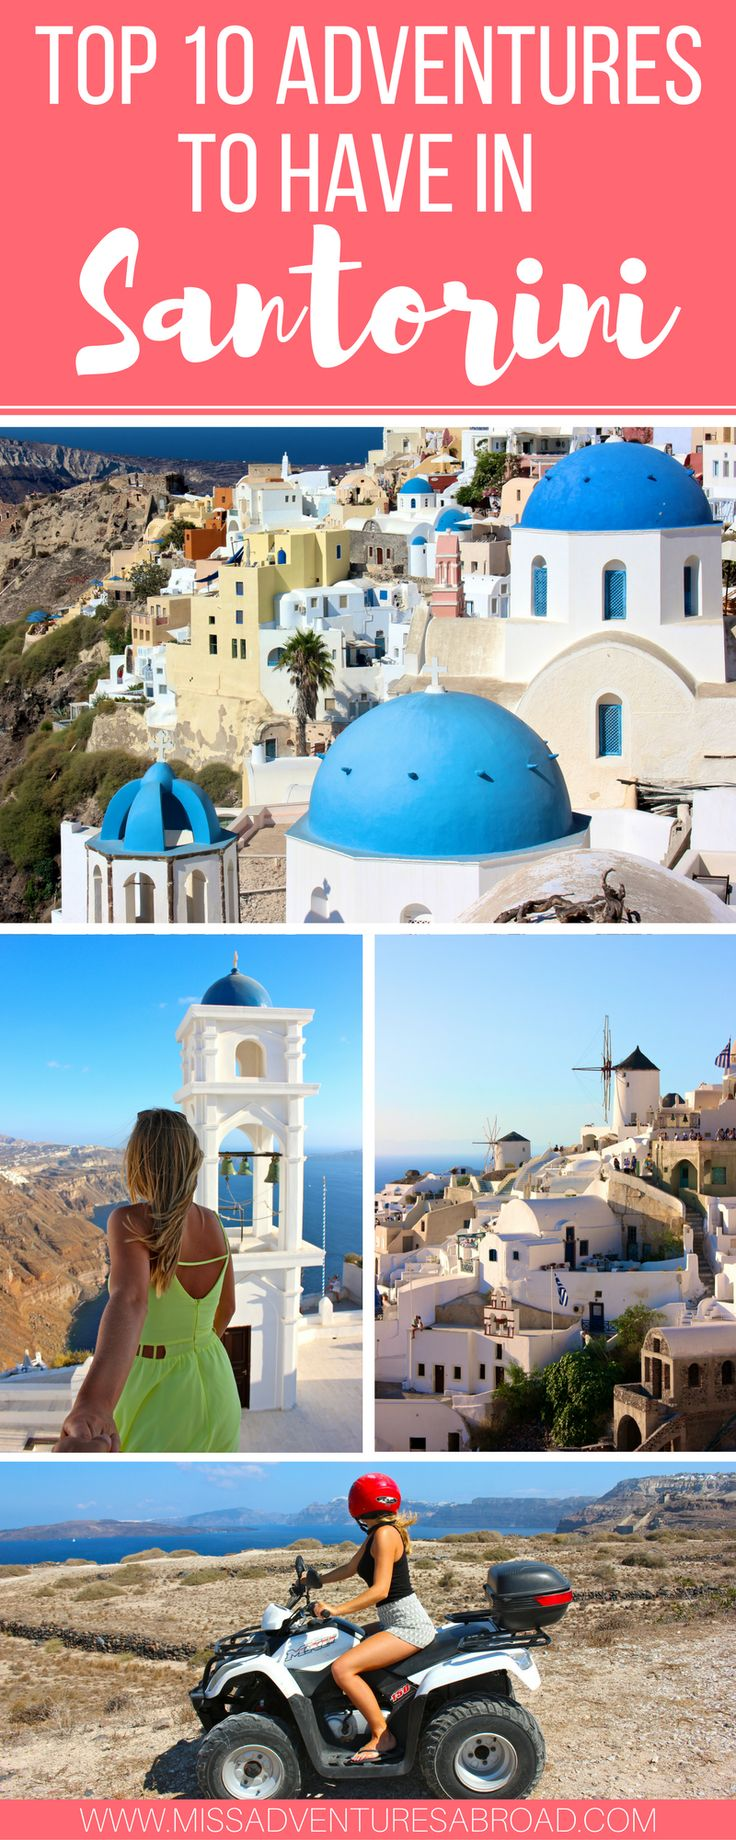 Top 10 Unforgettable Experiences To Have In Santorini | The top 10 things to do in Santorini, from ATV rides to cliff jumping, to day trips and volcano exploring! There are tons of adventures to have in Santorini, Greece.